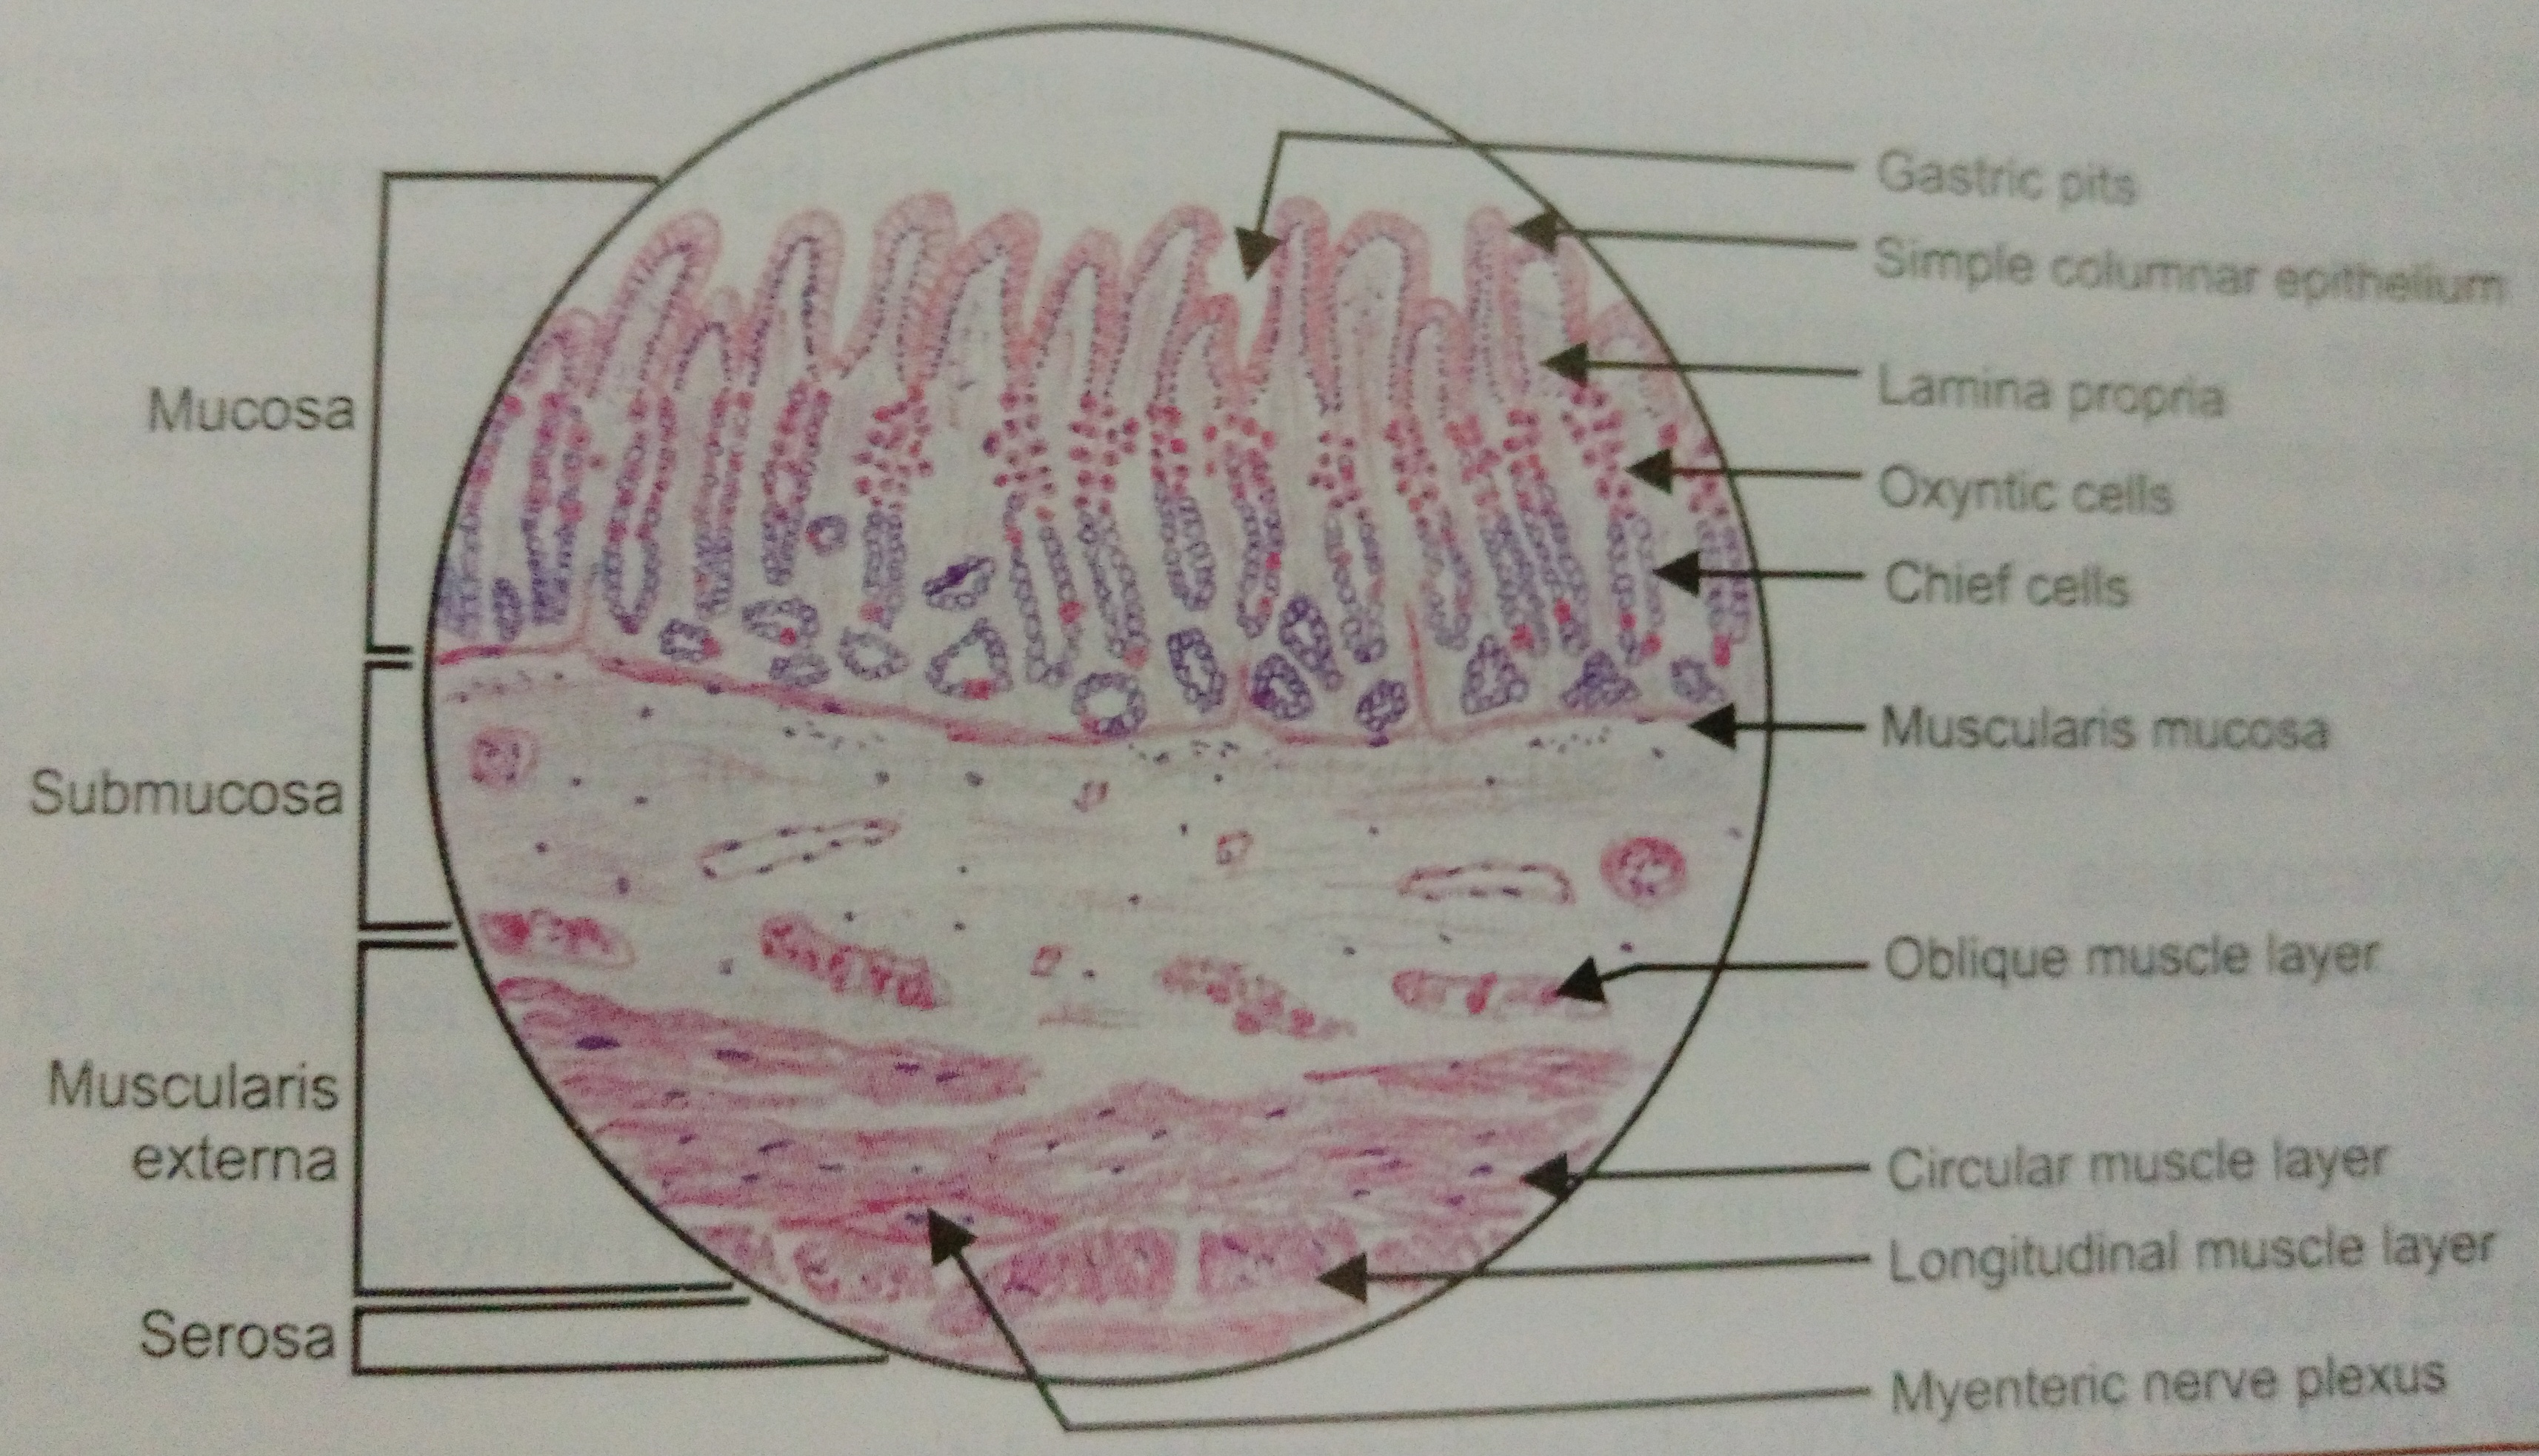 medium resolution of histology of fundus stomach manage your time 1996 posterior fundus uterus diagram of fundus